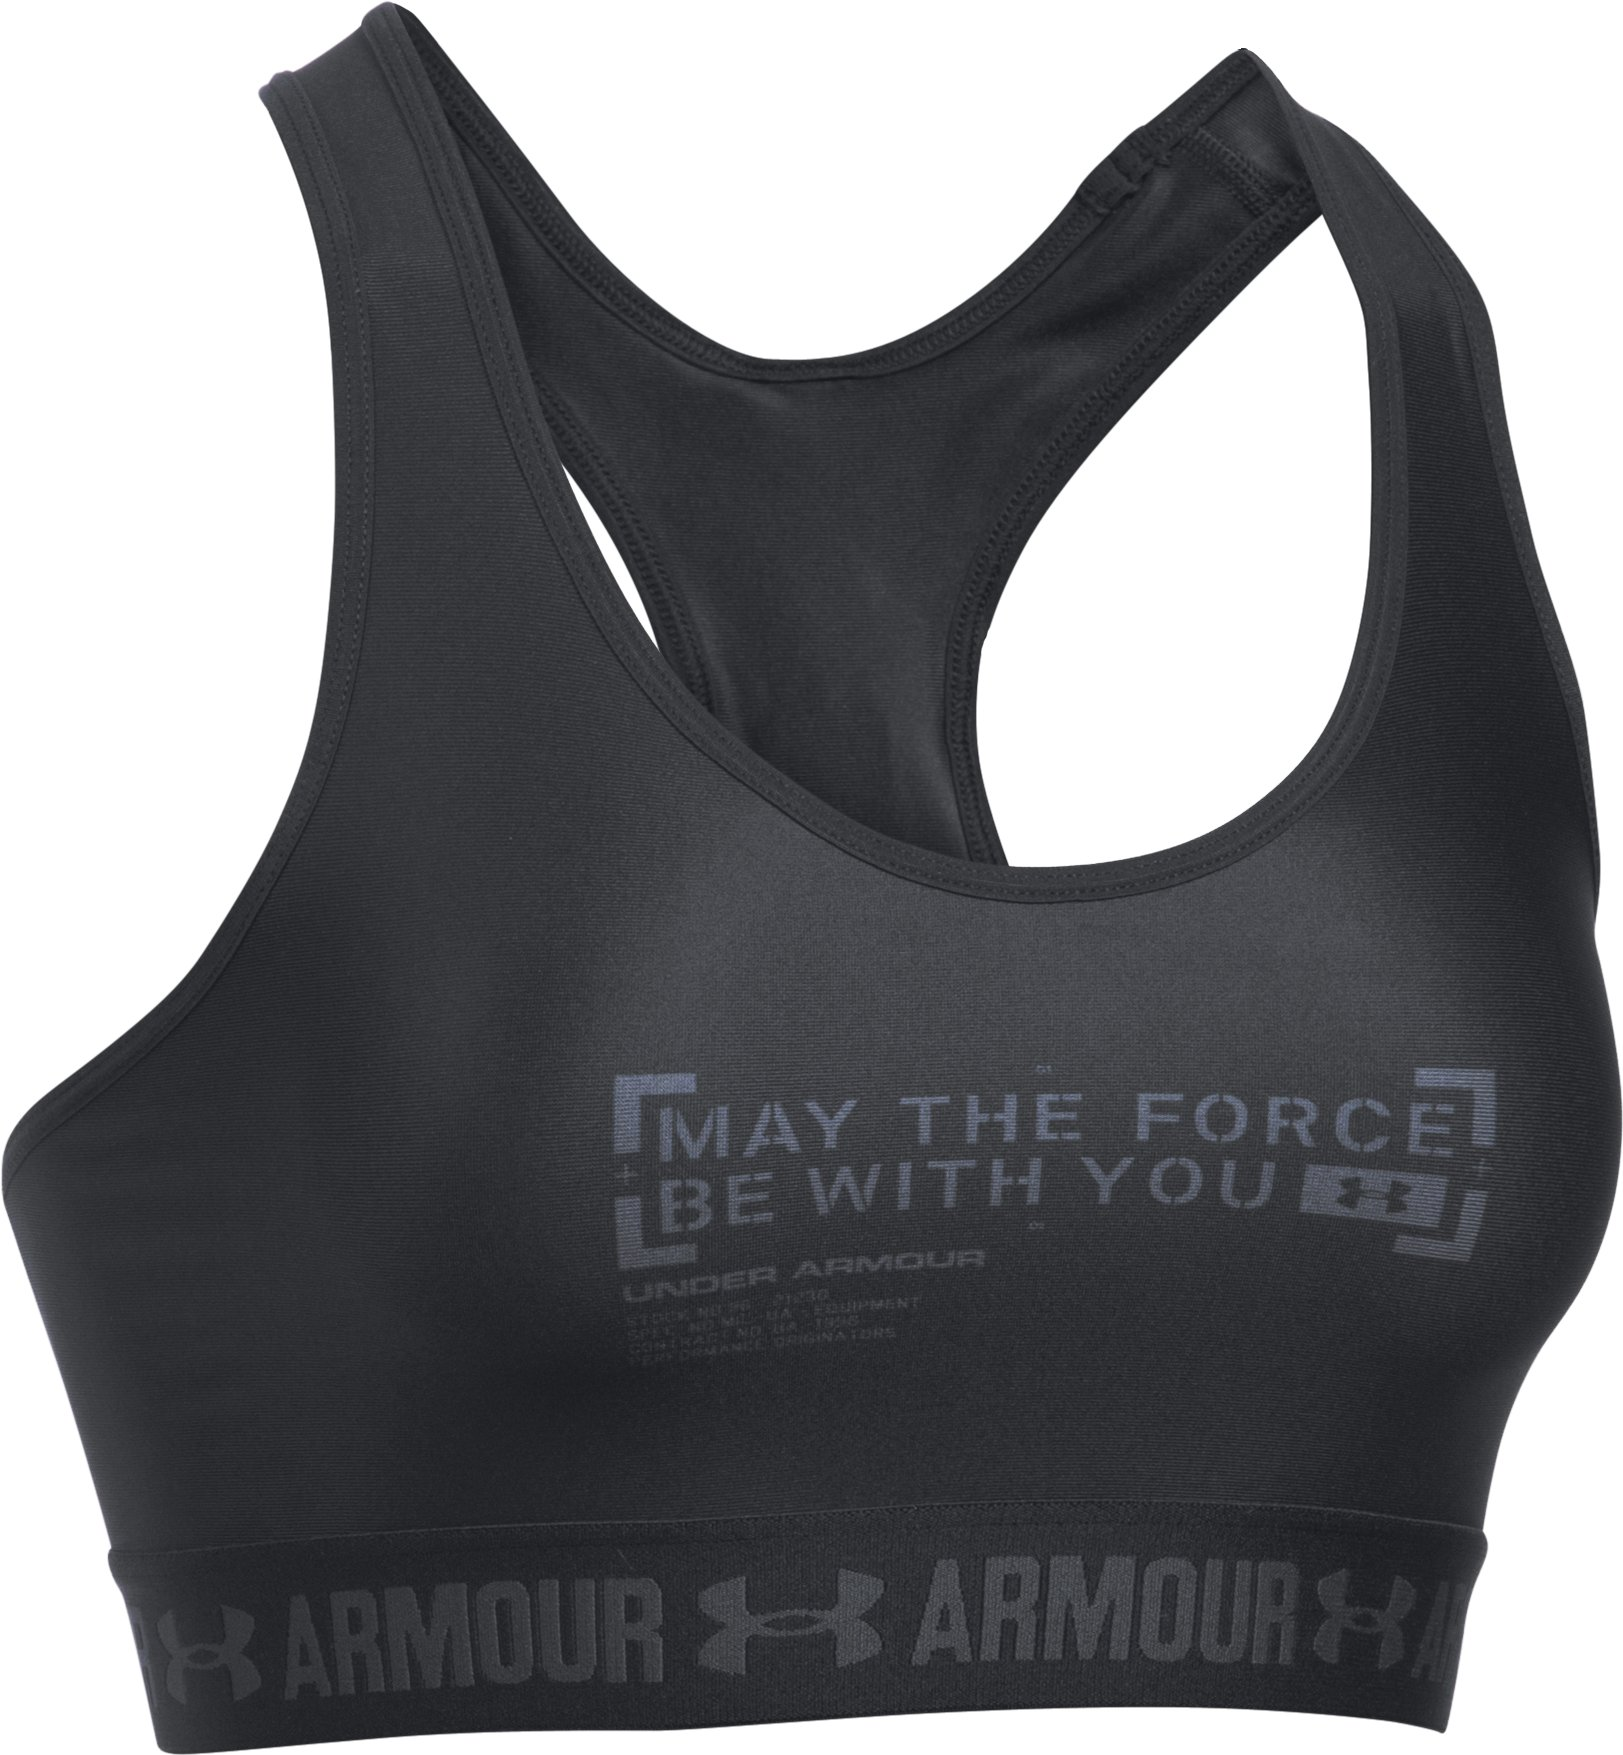 Women's Star Wars Force Be With You Sports Bra, Black , undefined